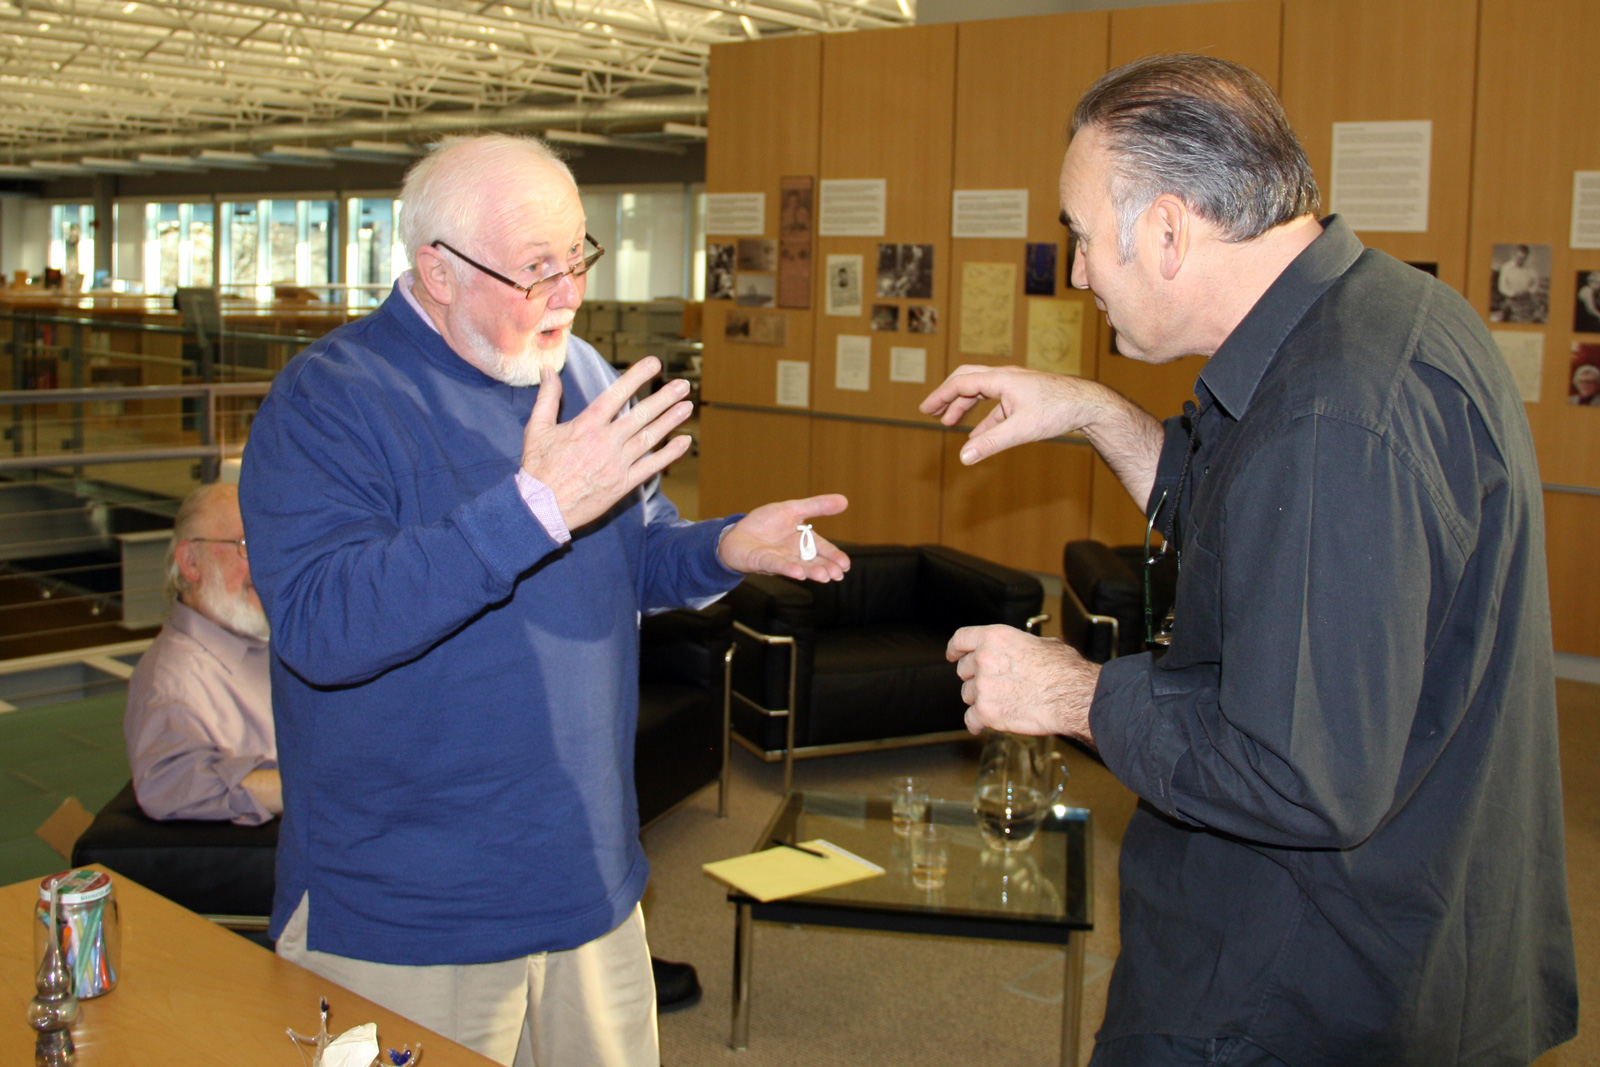 Paul Stankard and Lucio Bubacco discuss glassmaking at the Rakow Library